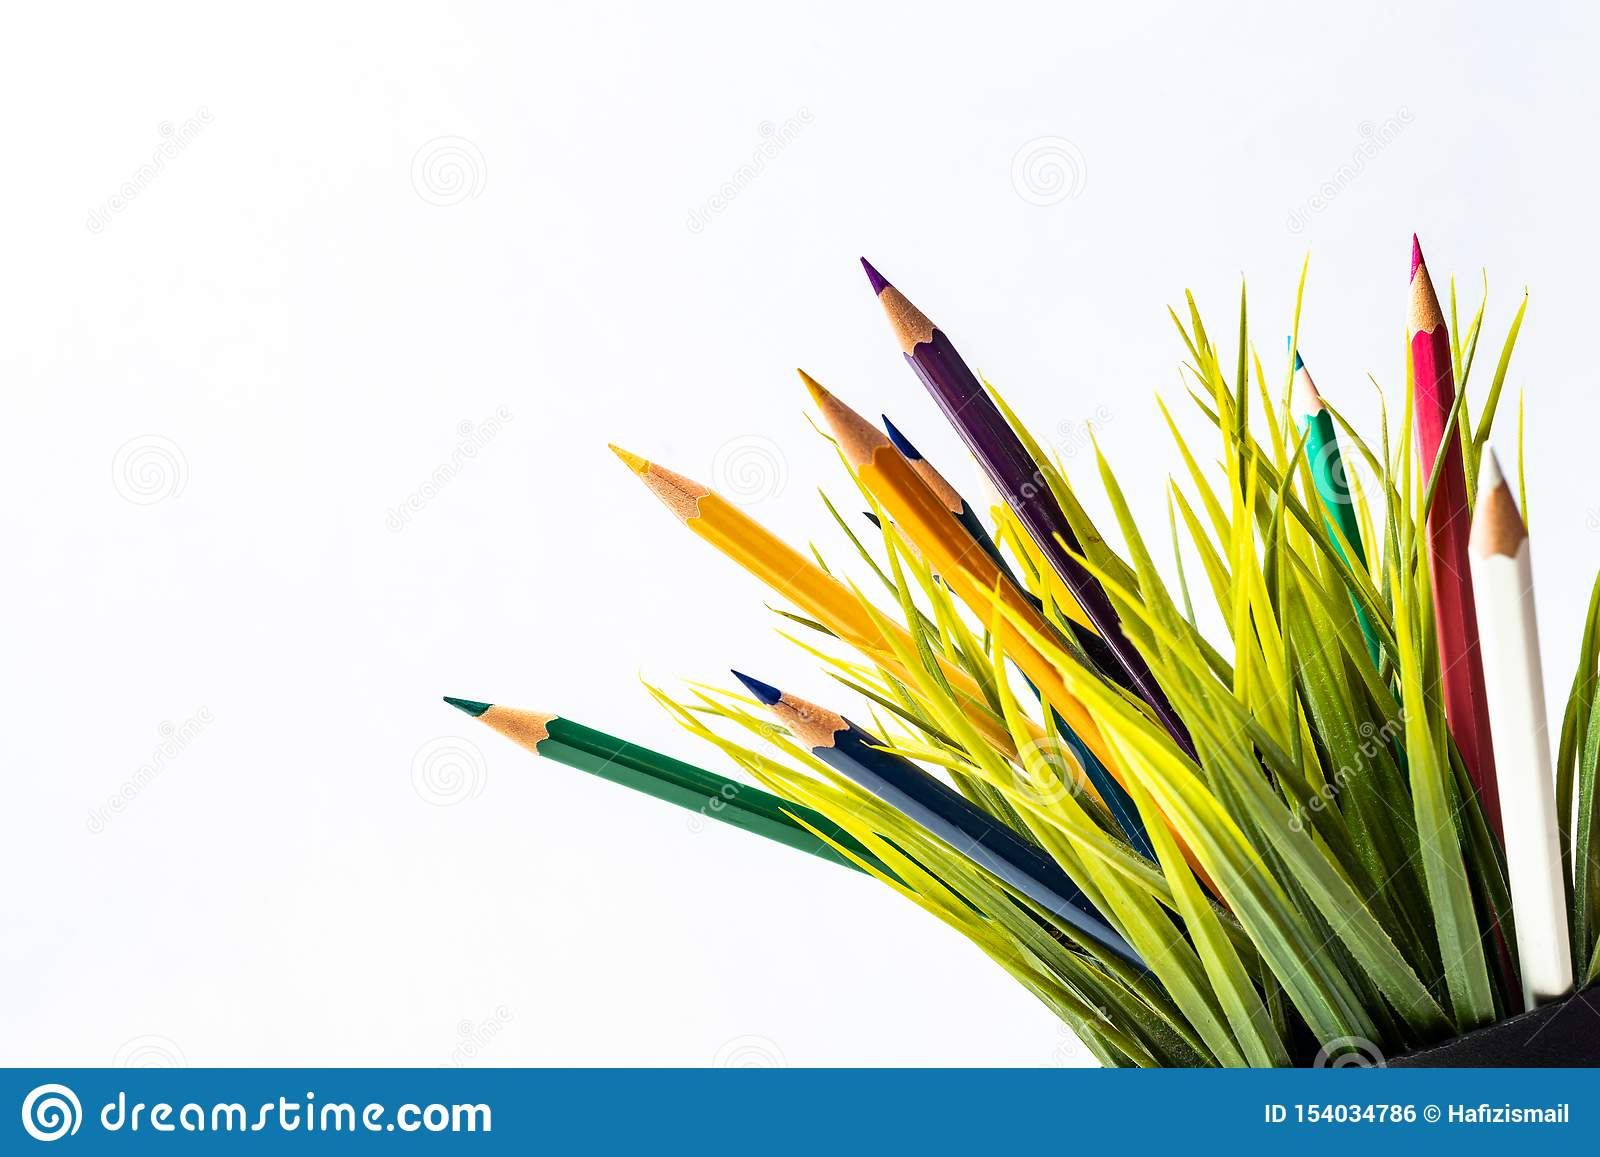 Nature Growth - Still Life Conceptual - Colored Pencils coming out of grass. Shallow depth of field, selective focusing